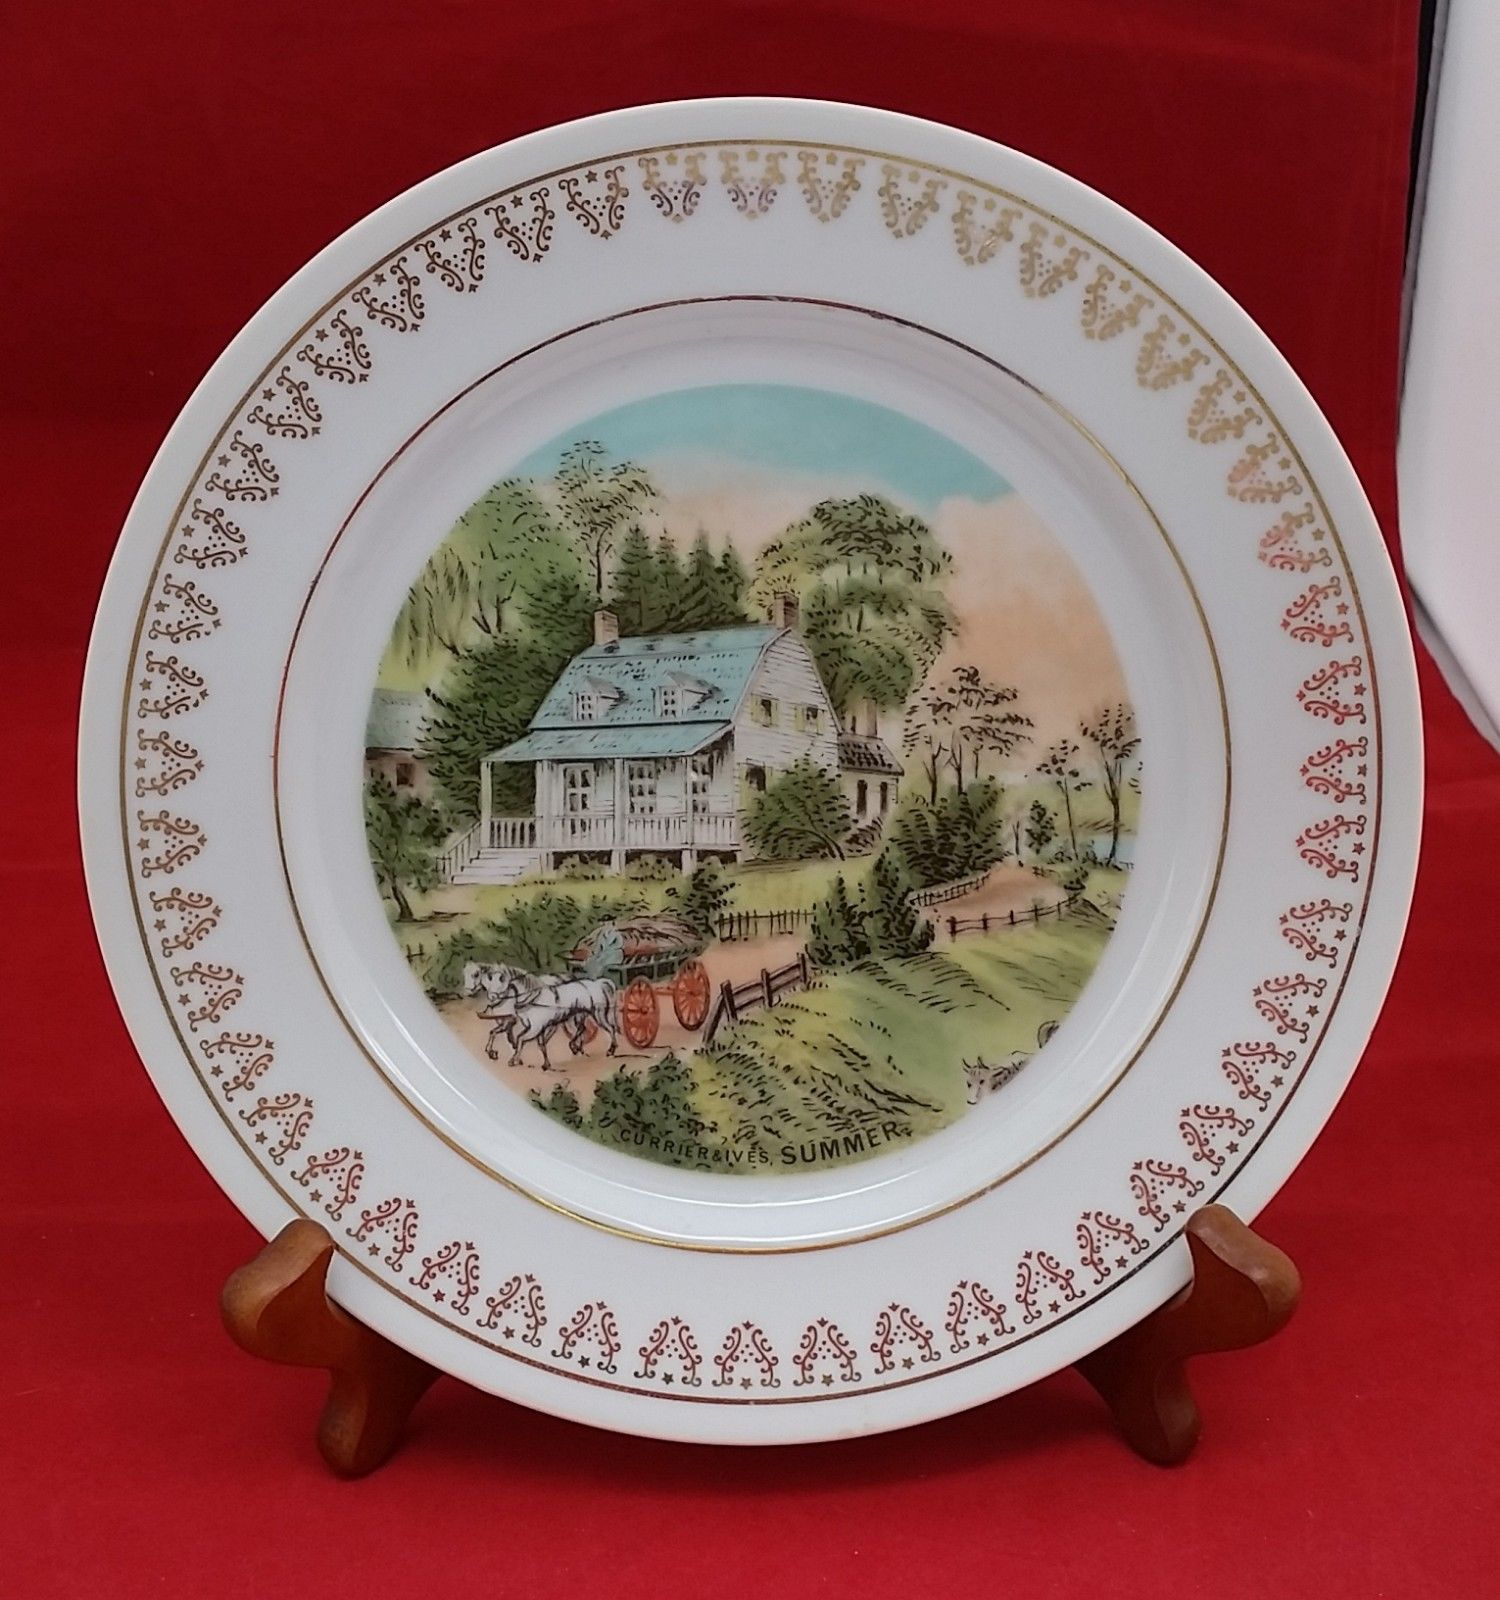 "Currier and Ives Summer vintage white porcelain plate with gold decor 8"" Japan"